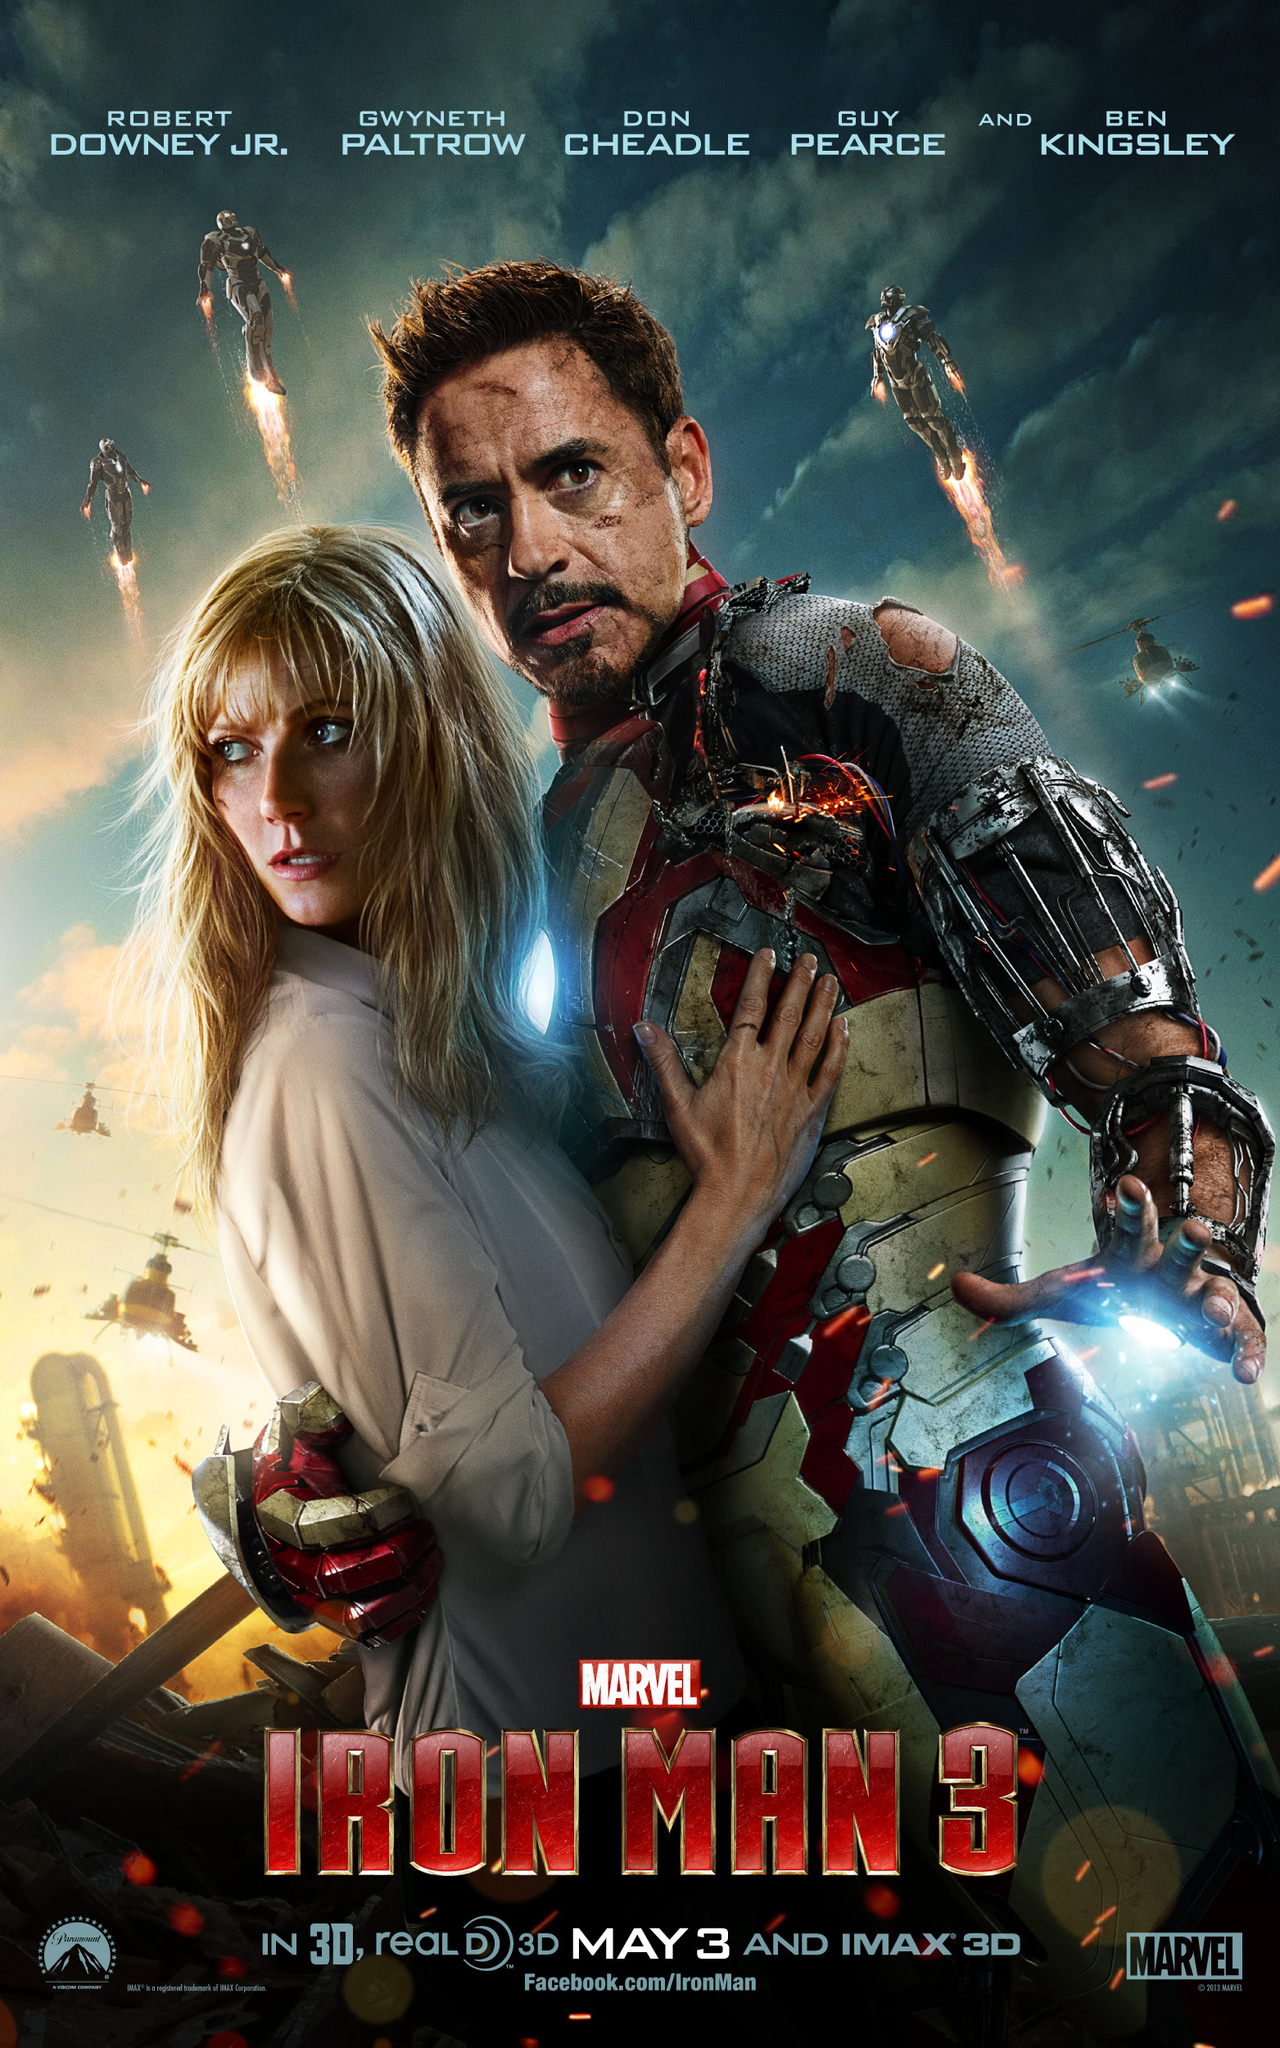 Iron Man 3 - Movie Poster #1 (Original)